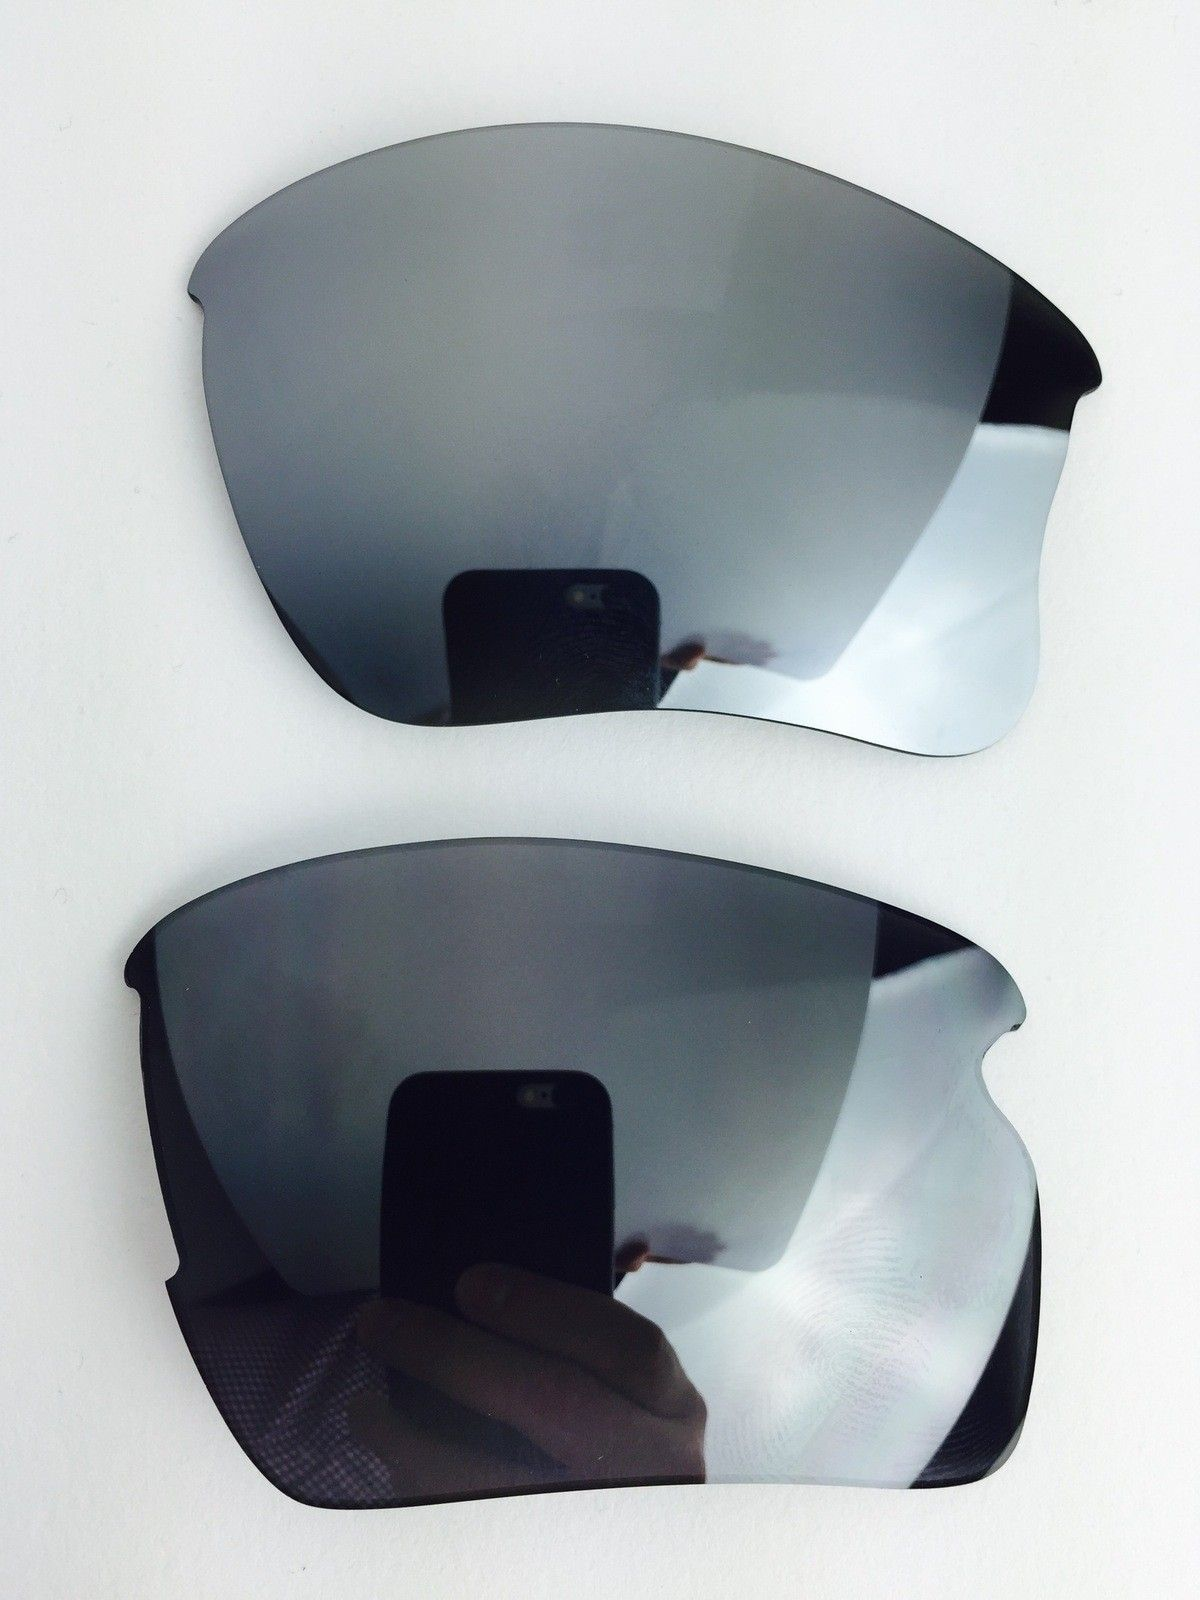 Flak jacket lenses fit flak jacket 2.0? - FullSizeRender (14).jpg